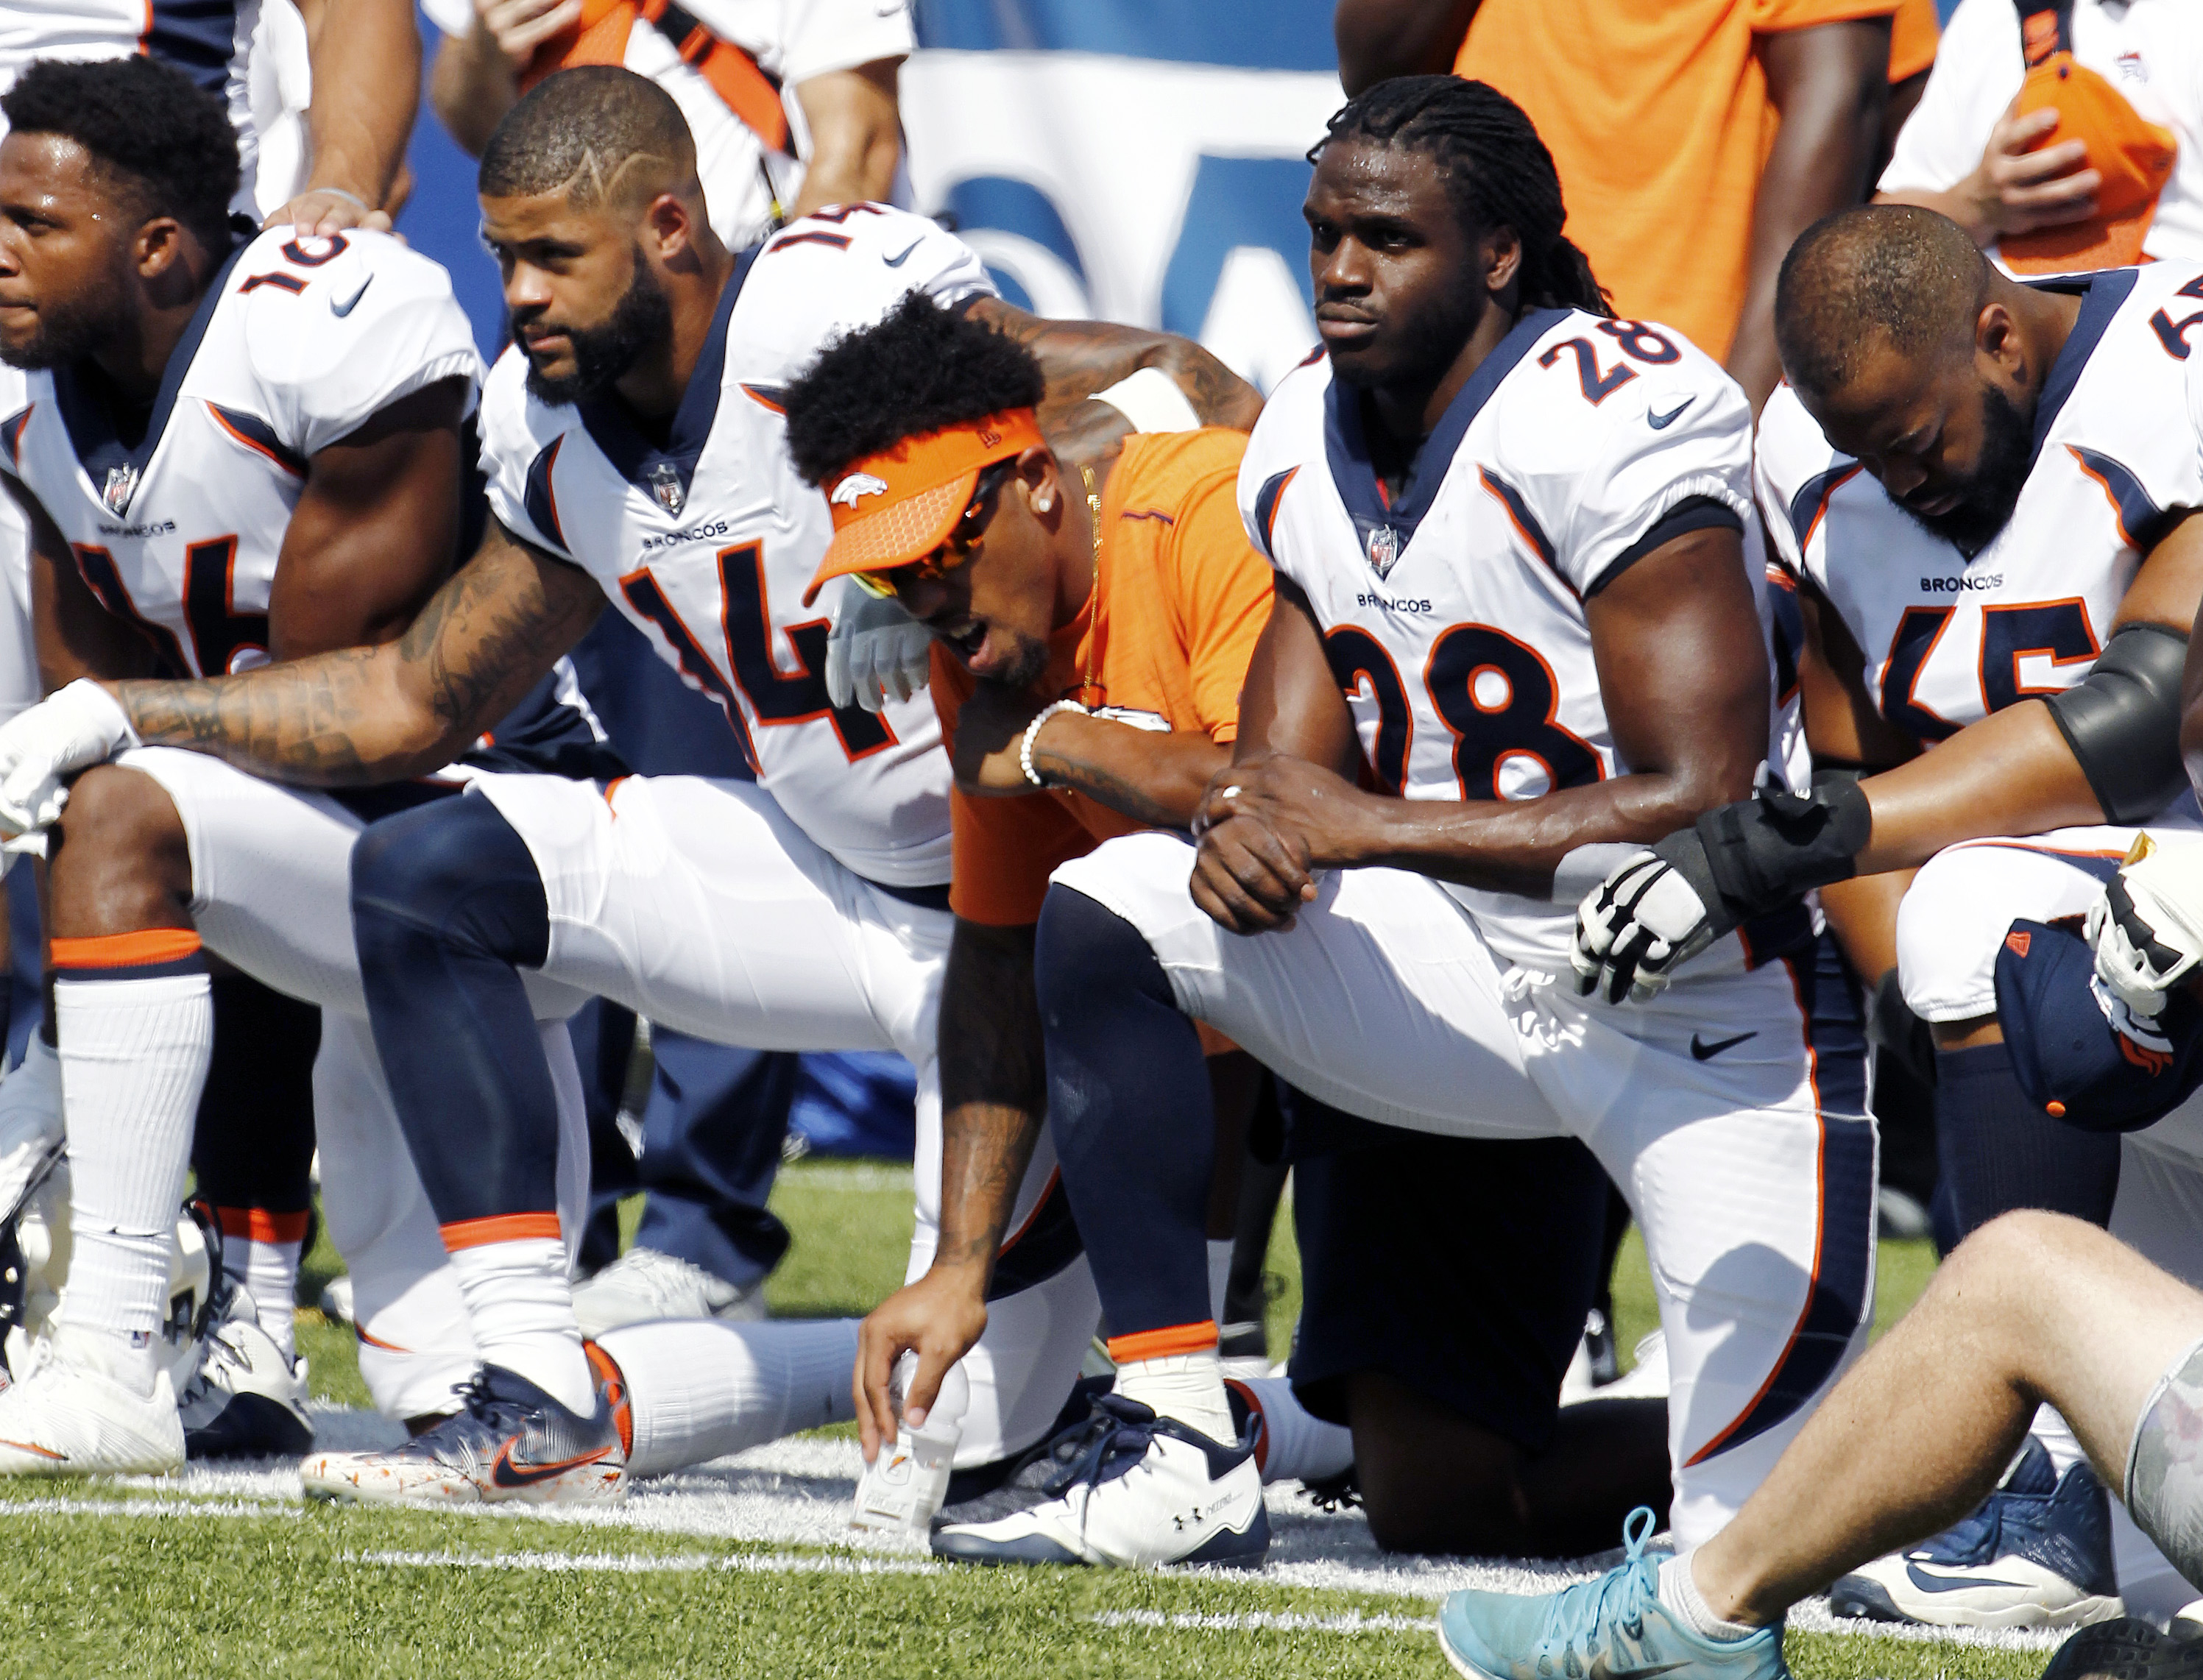 <p>Denver Broncos players kneel during the national anthem prior to theirgame against the Buffalo Bills, Sunday, Sept. 24, 2017, in Orchard Park, N.Y.</p>